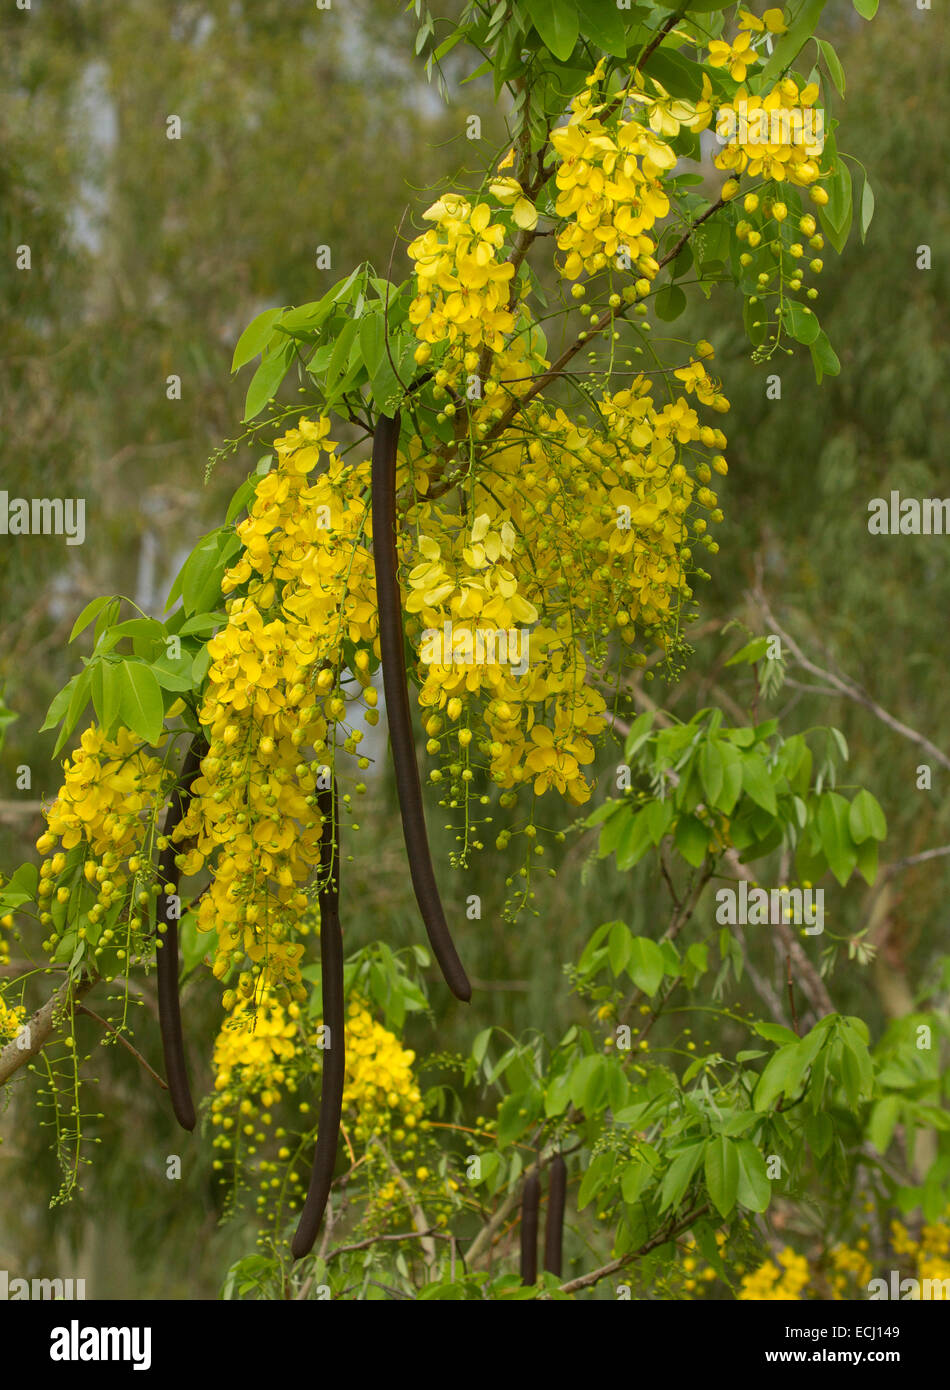 Long racemes of yellow flowers long seed pods green leaves of stock photo royalty free image - Trees that bloom yellow flowers ...